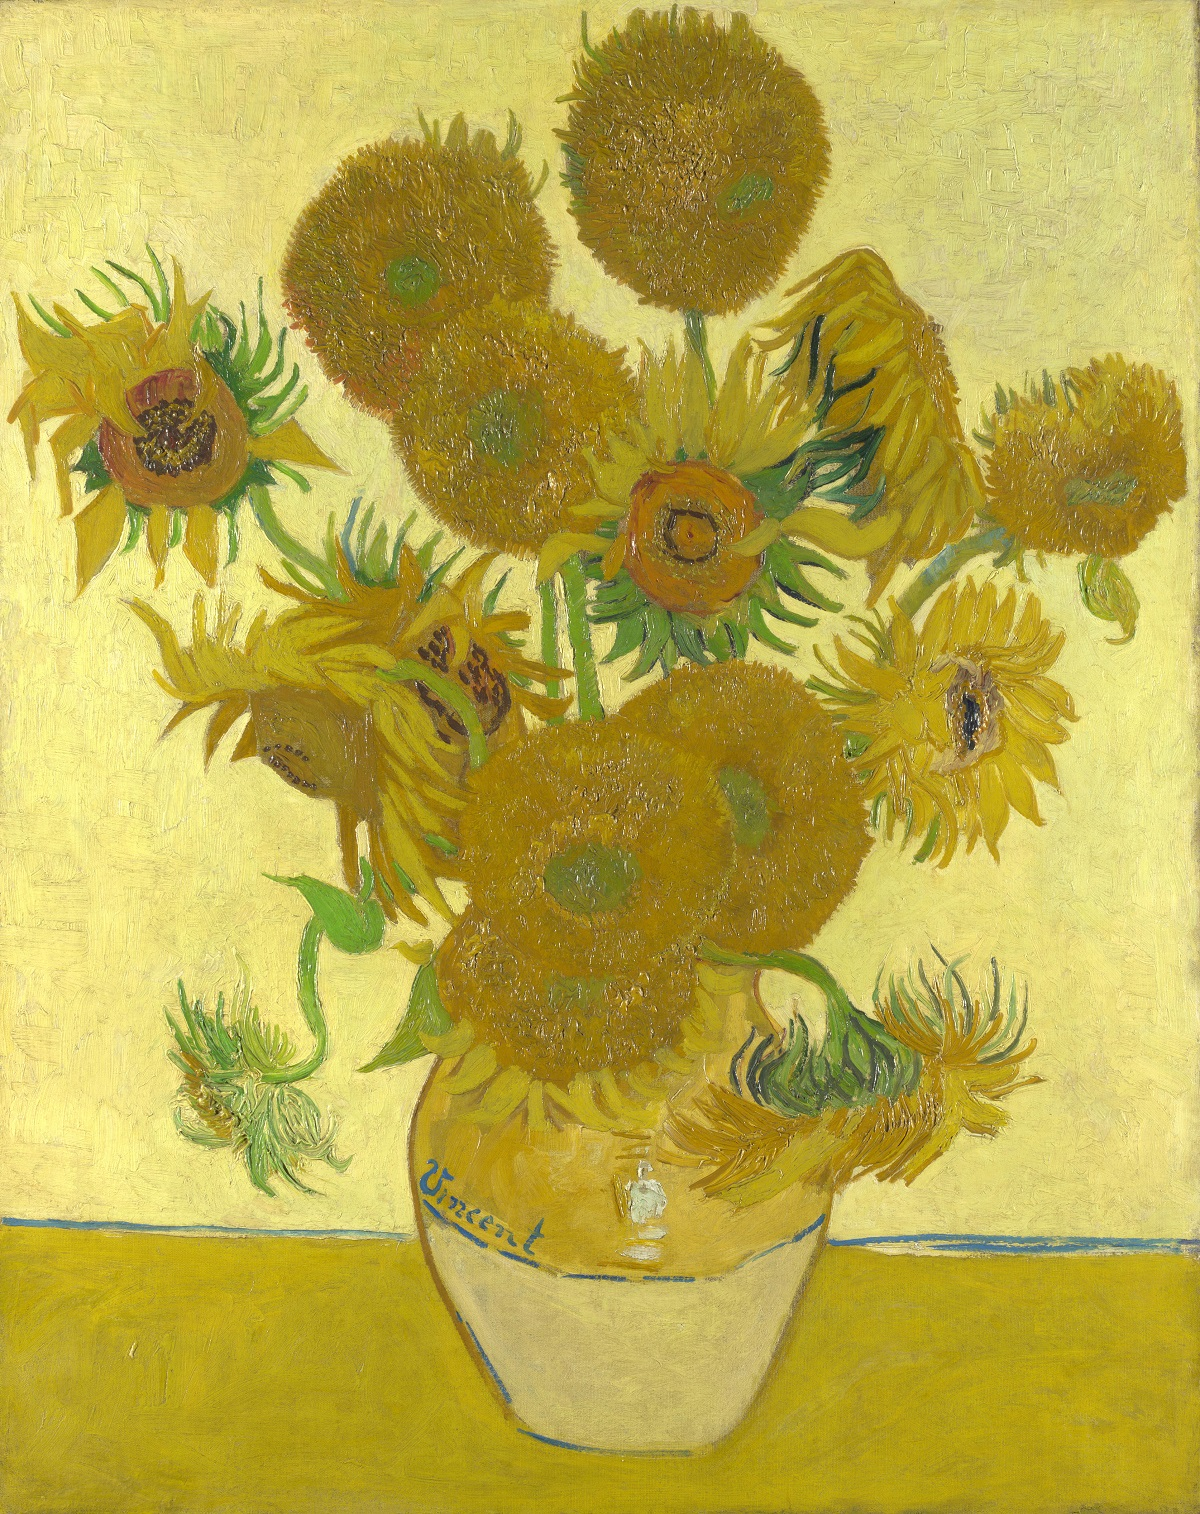 Van Gogh's Sunflowers, 4th version | Source: wikipedia.org